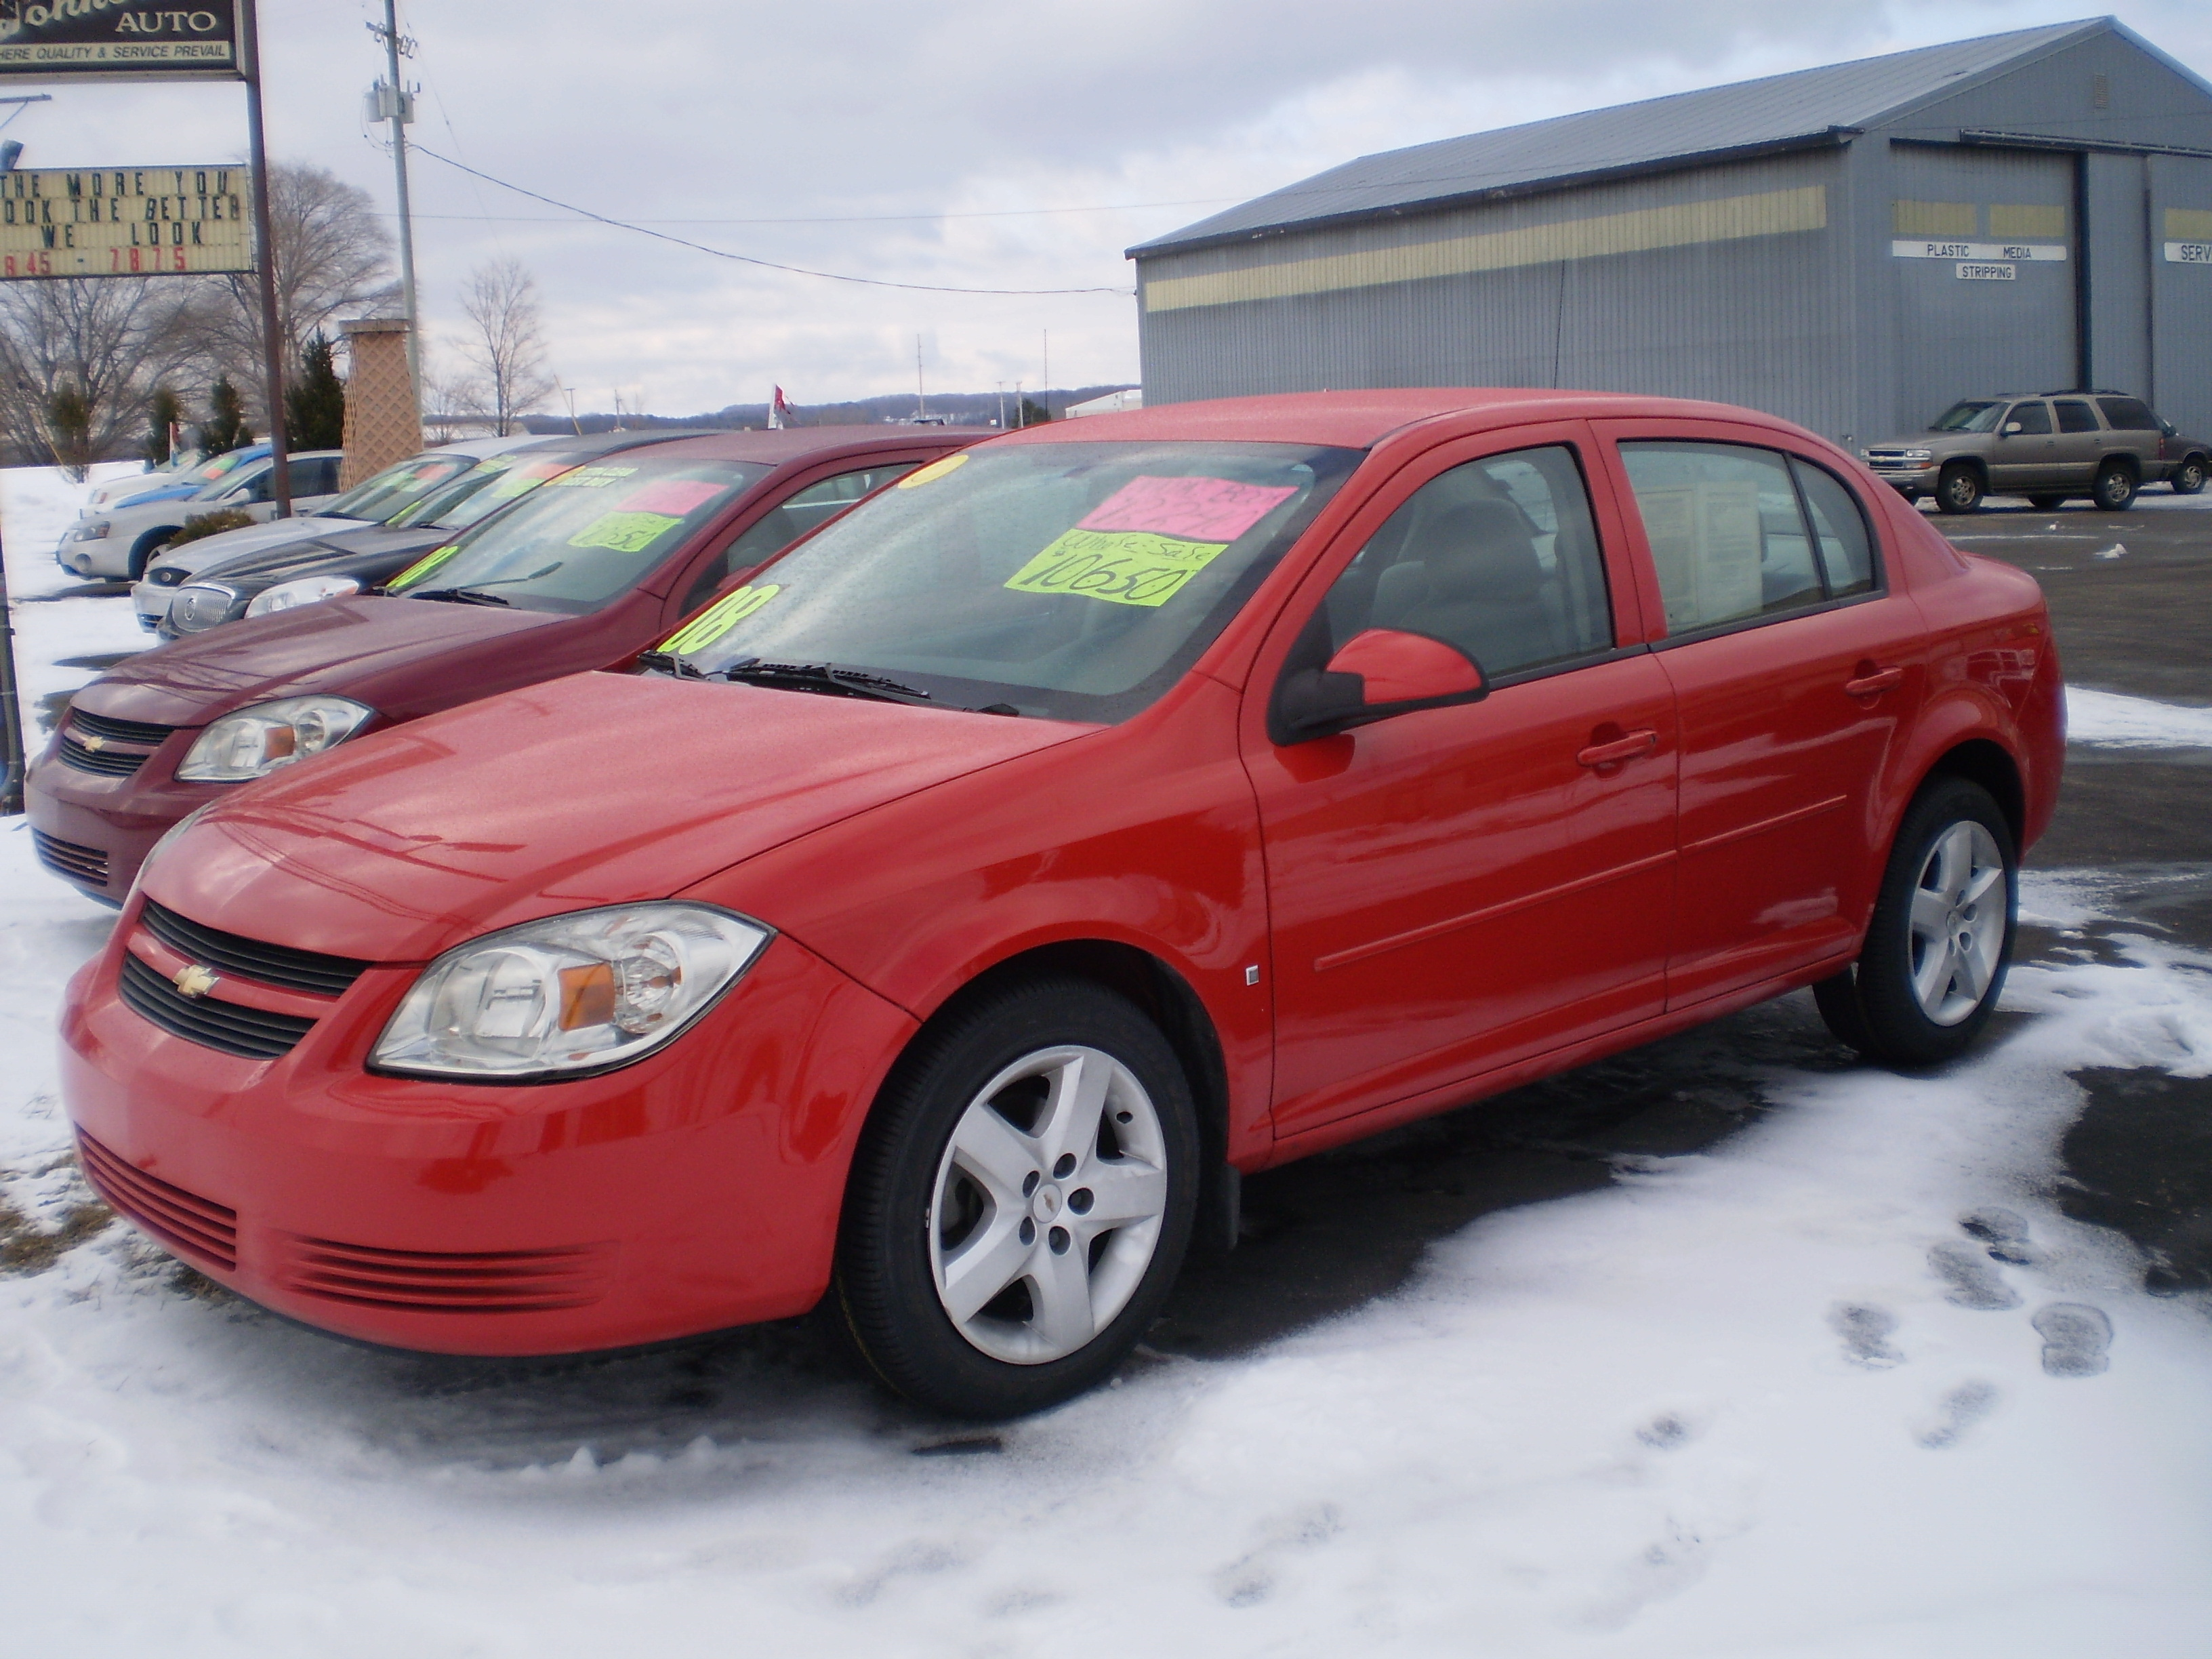 2008 chevrolet cobalt pictures information and specs. Cars Review. Best American Auto & Cars Review